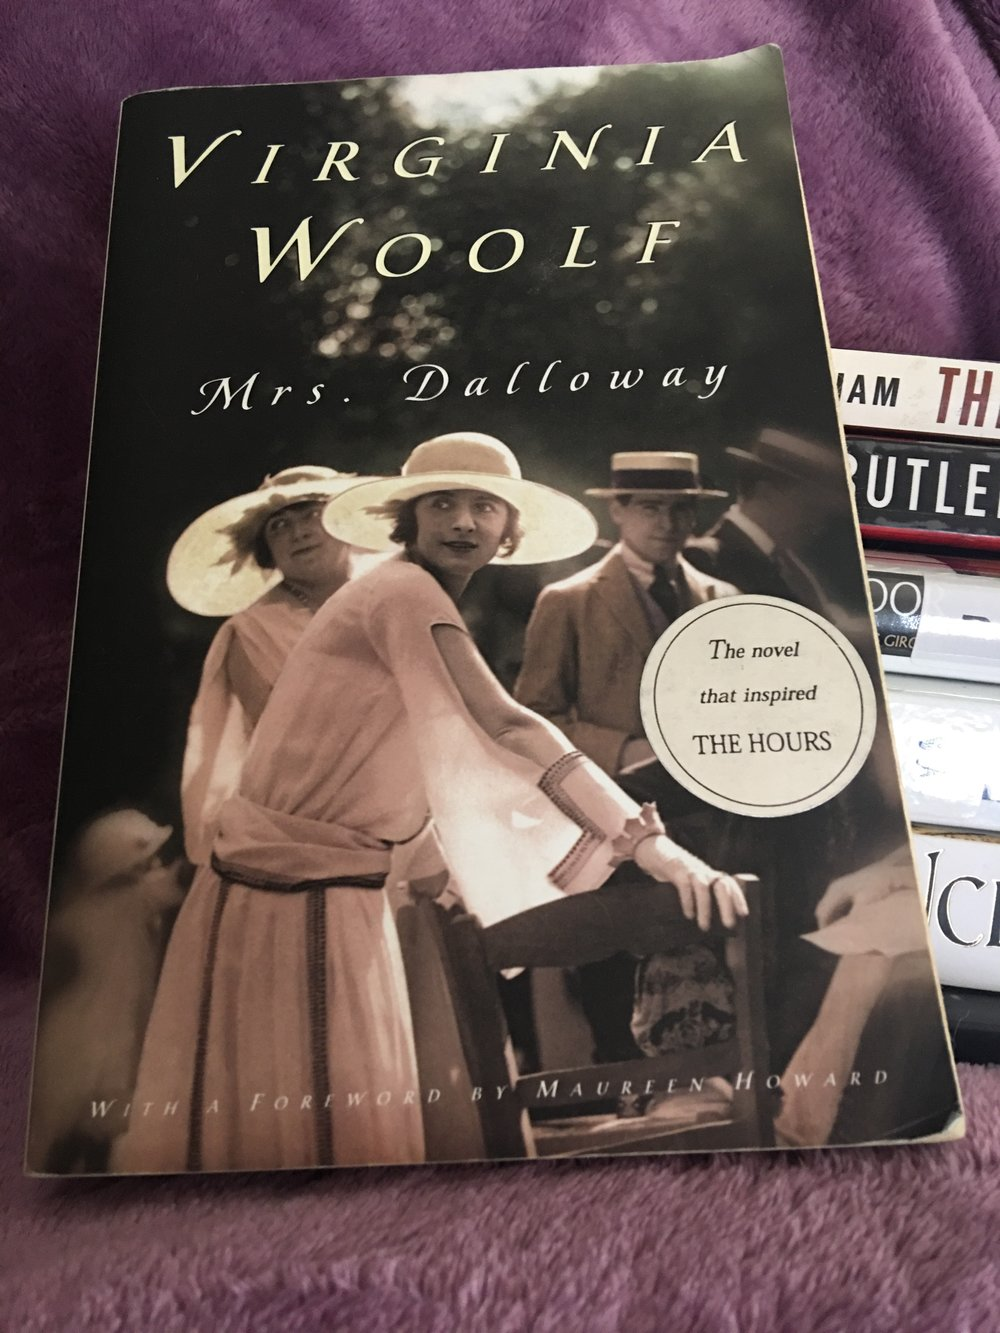 Mrs. Dalloway - By Virginia Woolf My rating: 4 stars  |  Pages: 197What made me pick it up: It's a classic, I wanted to read The Hours but was told to read this first and it was a reading women challenge to read a book by Virginia Woolf; a shorter read for the 24in48 readathonFormat: Paperback |  Source: Borrowed2018 challenge/s: Goodreads 2018 Reading Challenge; Reading Women Challenge 2018